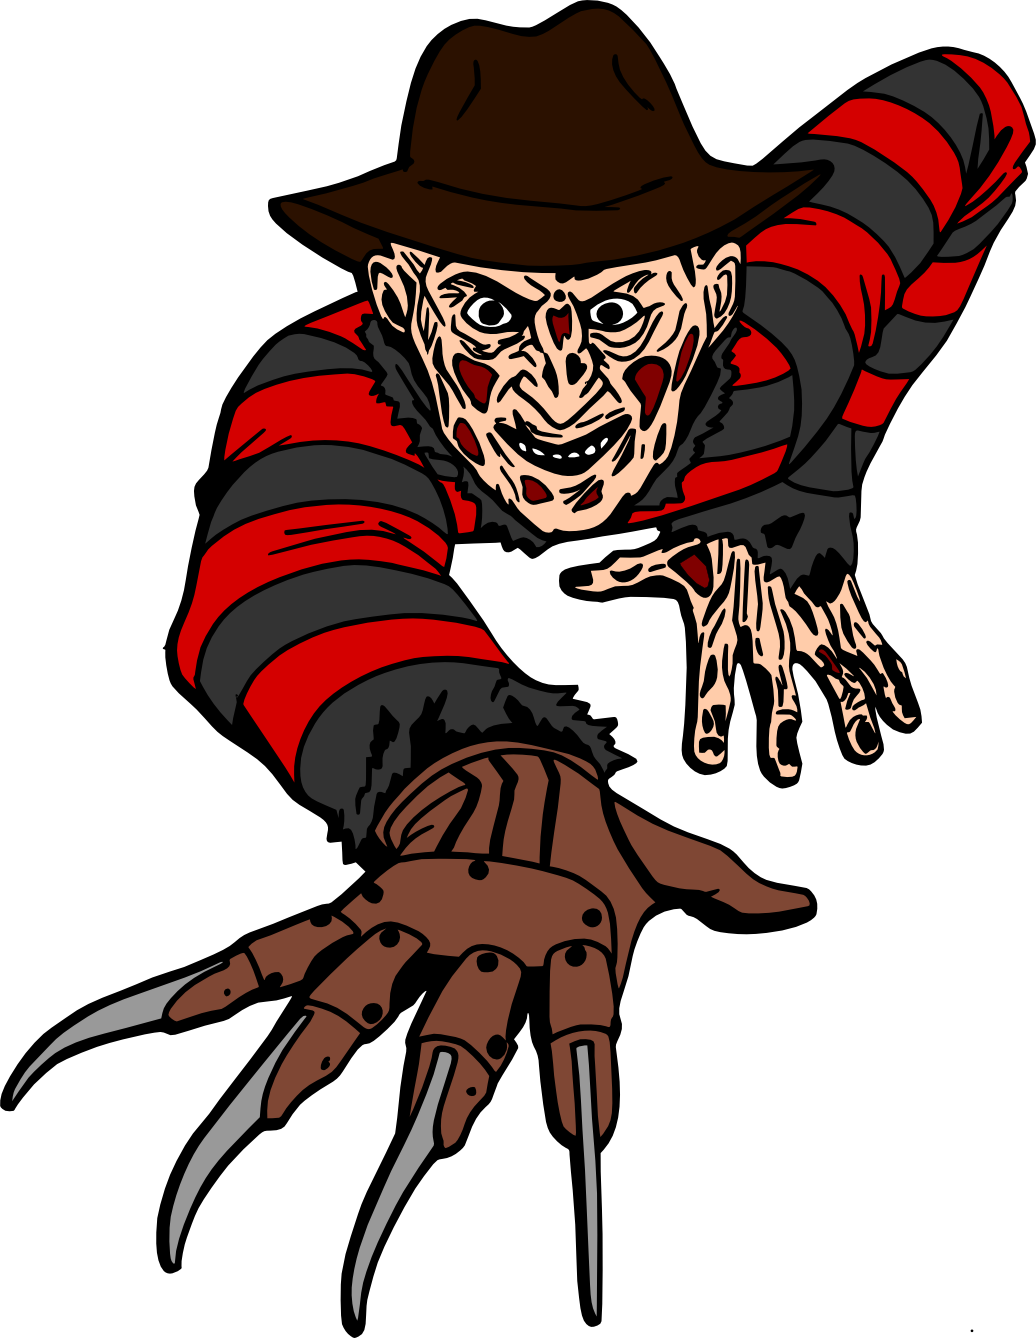 Clip movis freddy vs jason. Crafting with meek krueger